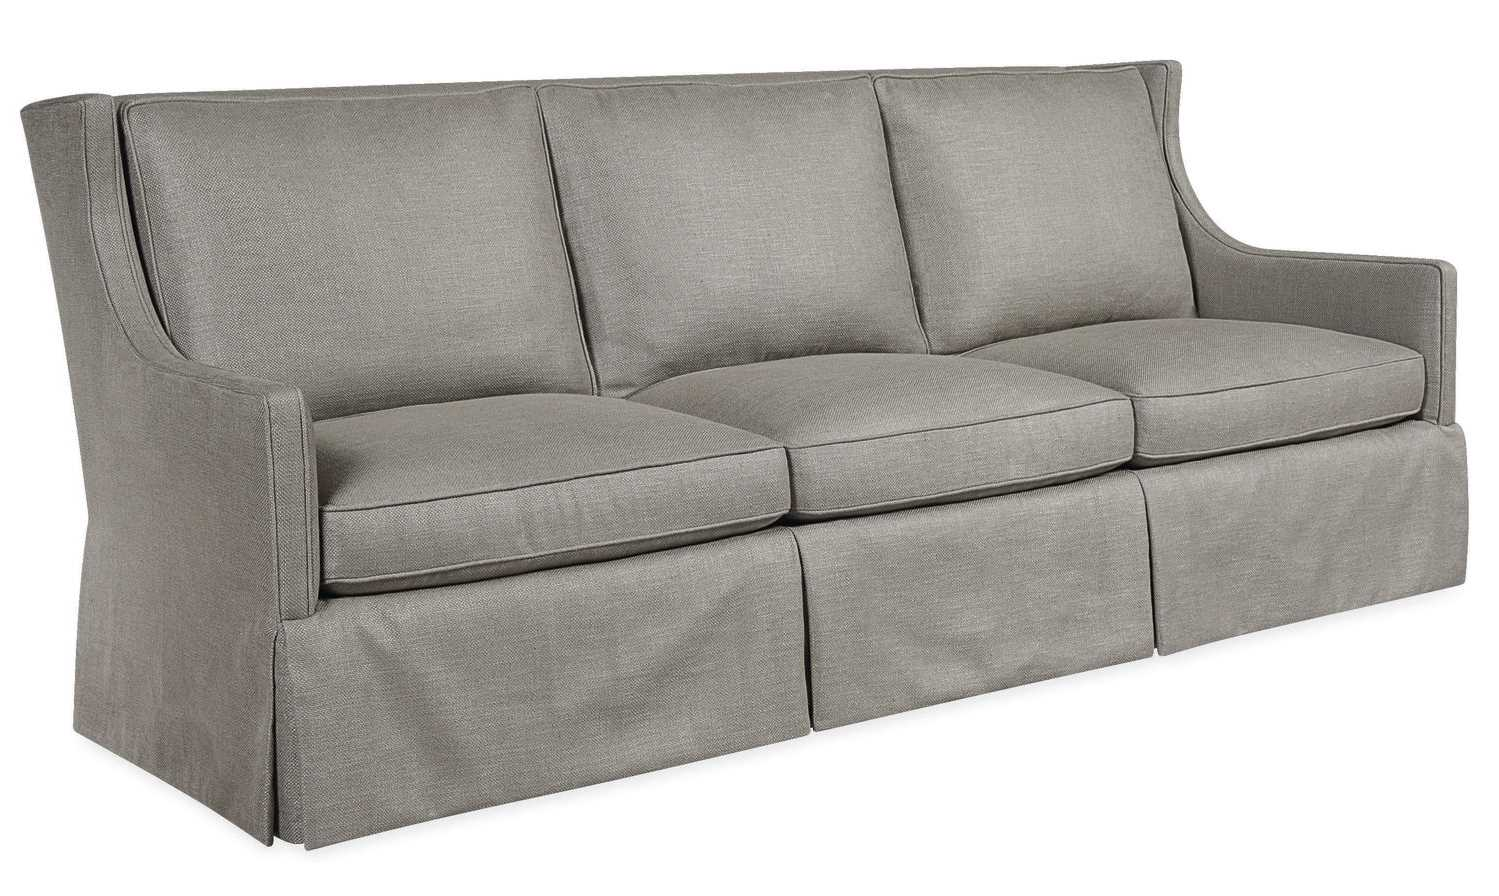 Sofa Foam Meaning Sofa Seat Cushions Pick The Perfect Depth The Stated Home